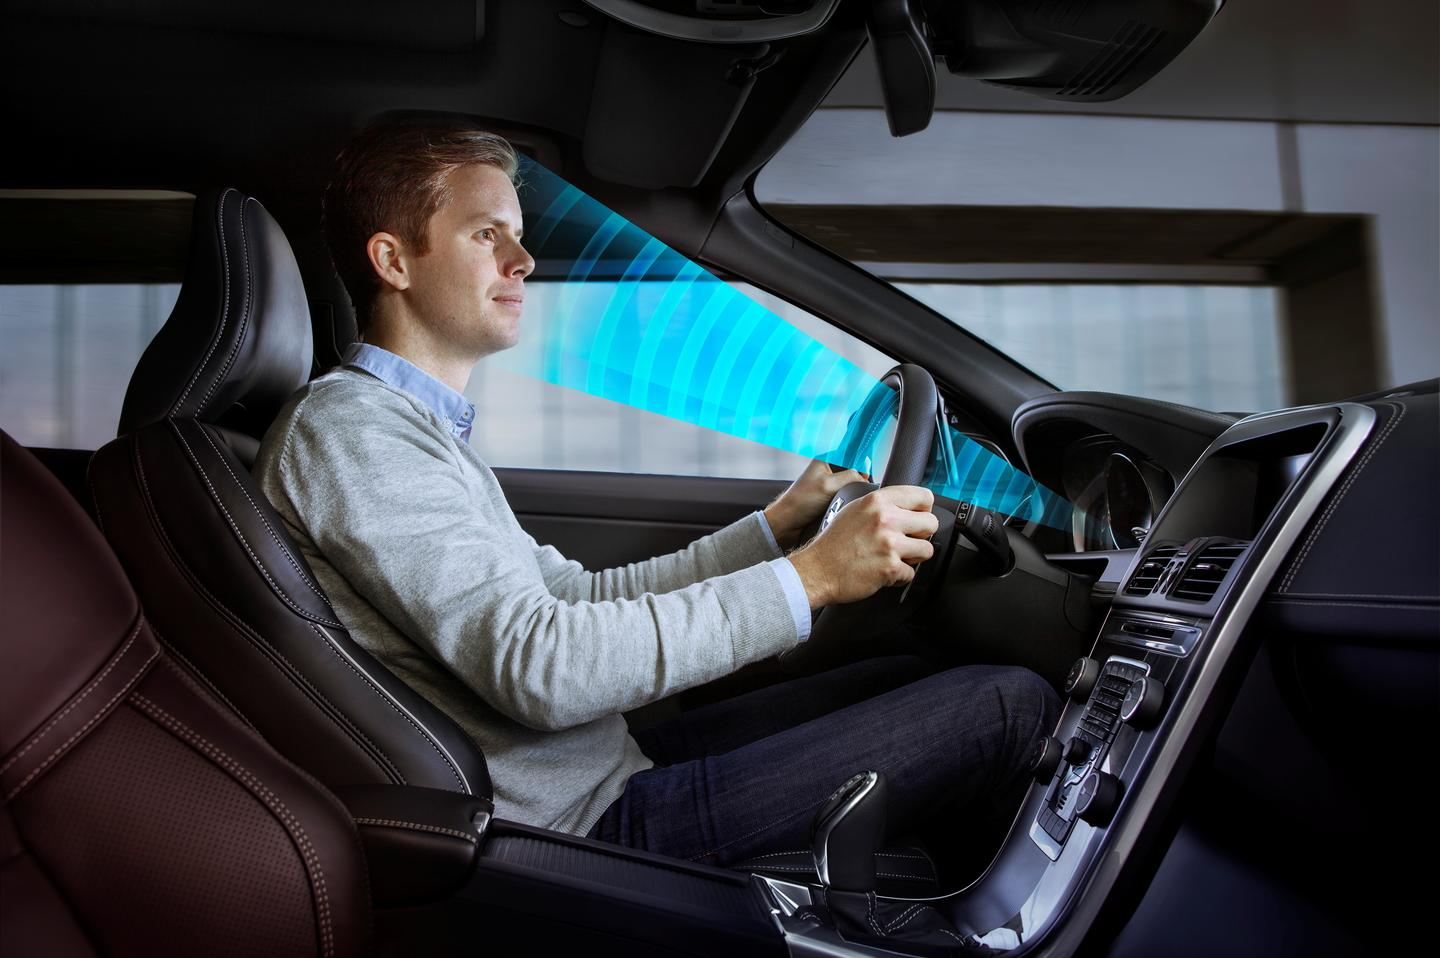 Volvo Driver State Estimation uses a dash-mounted infrared sensor